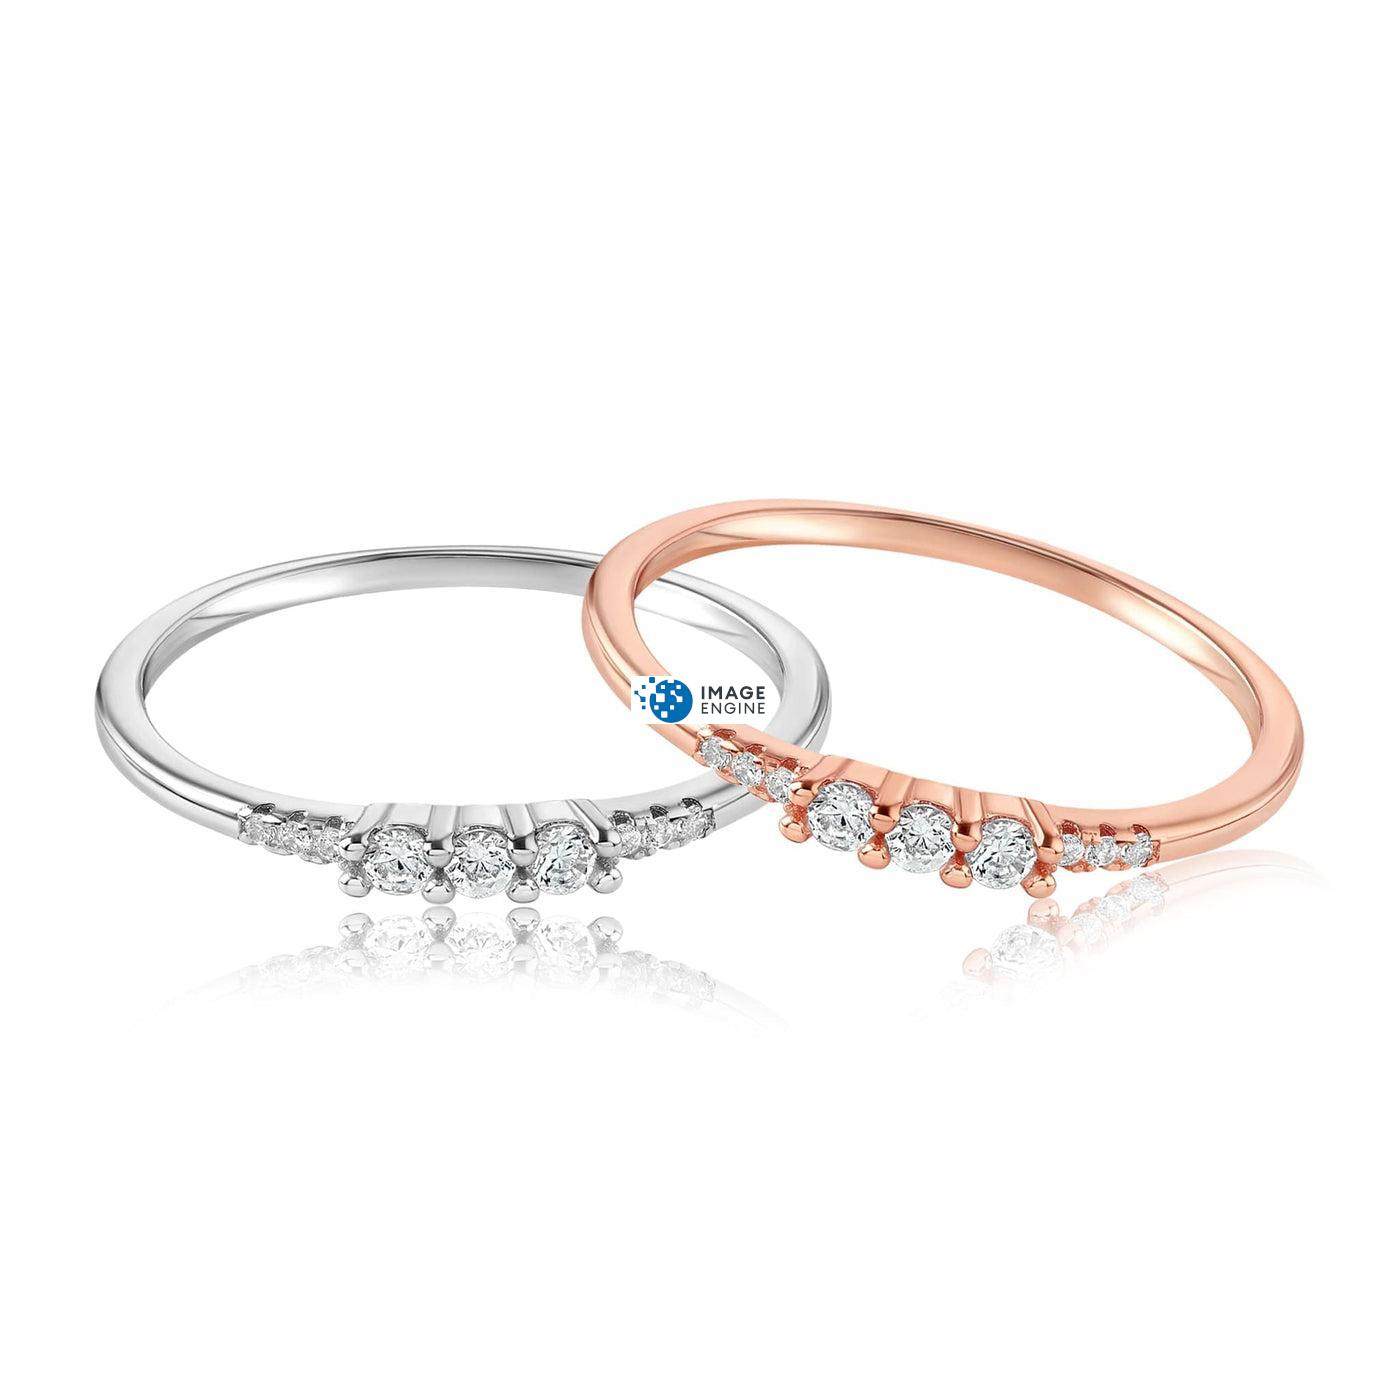 Emie Ring - Front View Side by Side - 18K Rose Gold Vermeil and 925 Sterling Silver